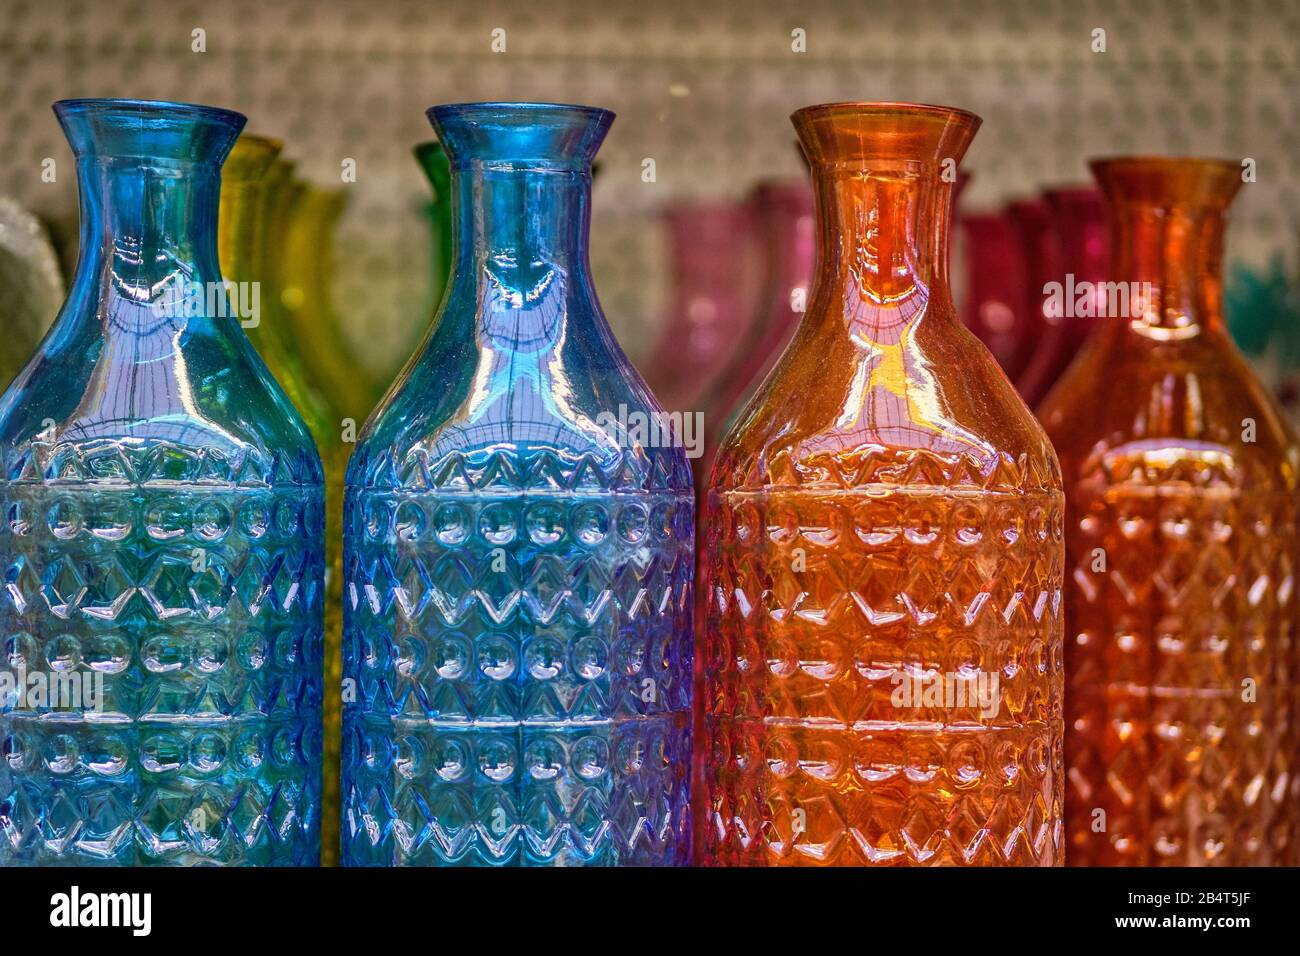 Multicolored Glass Decorative Bottles In A Store Close Up Stock Photo Alamy